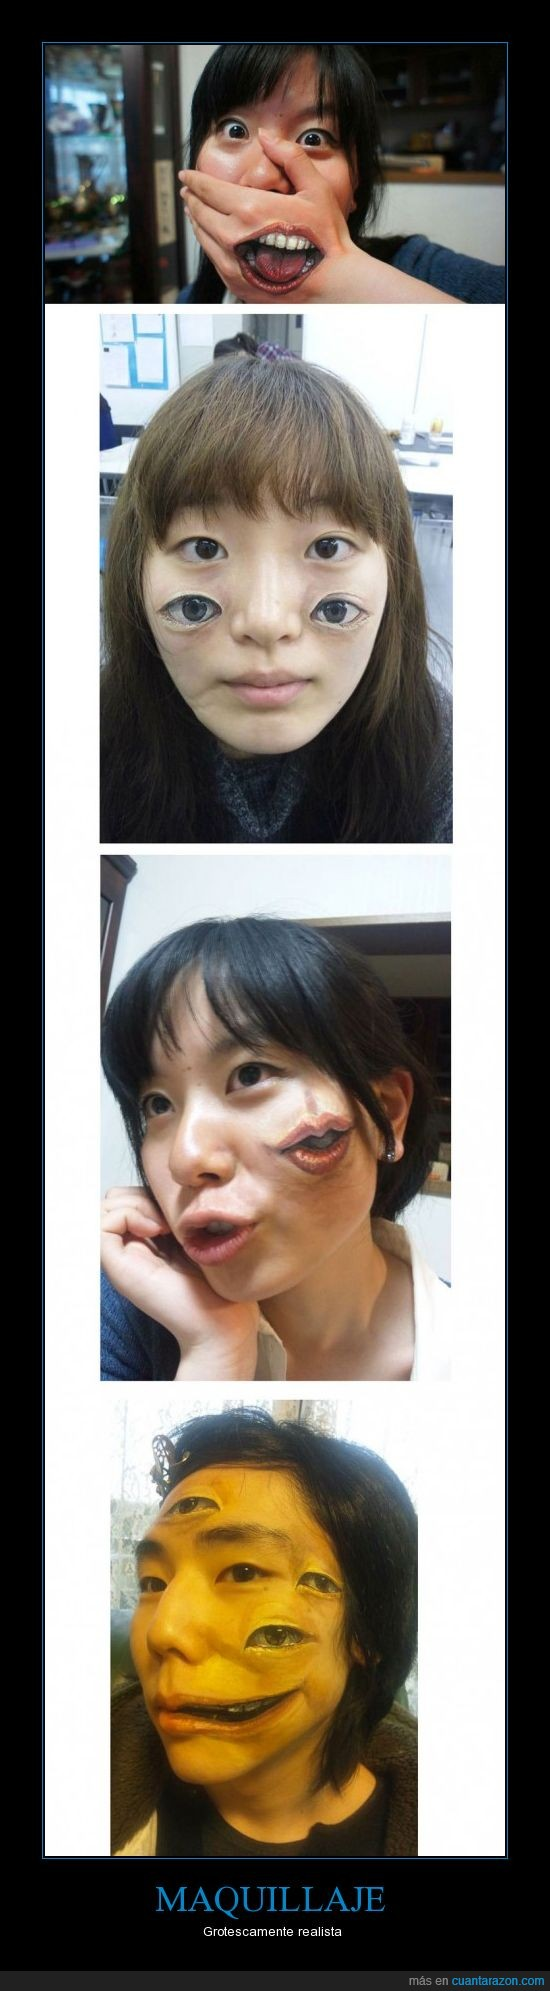 http://www.lolbrary.com/post/22410/scary-makeup/